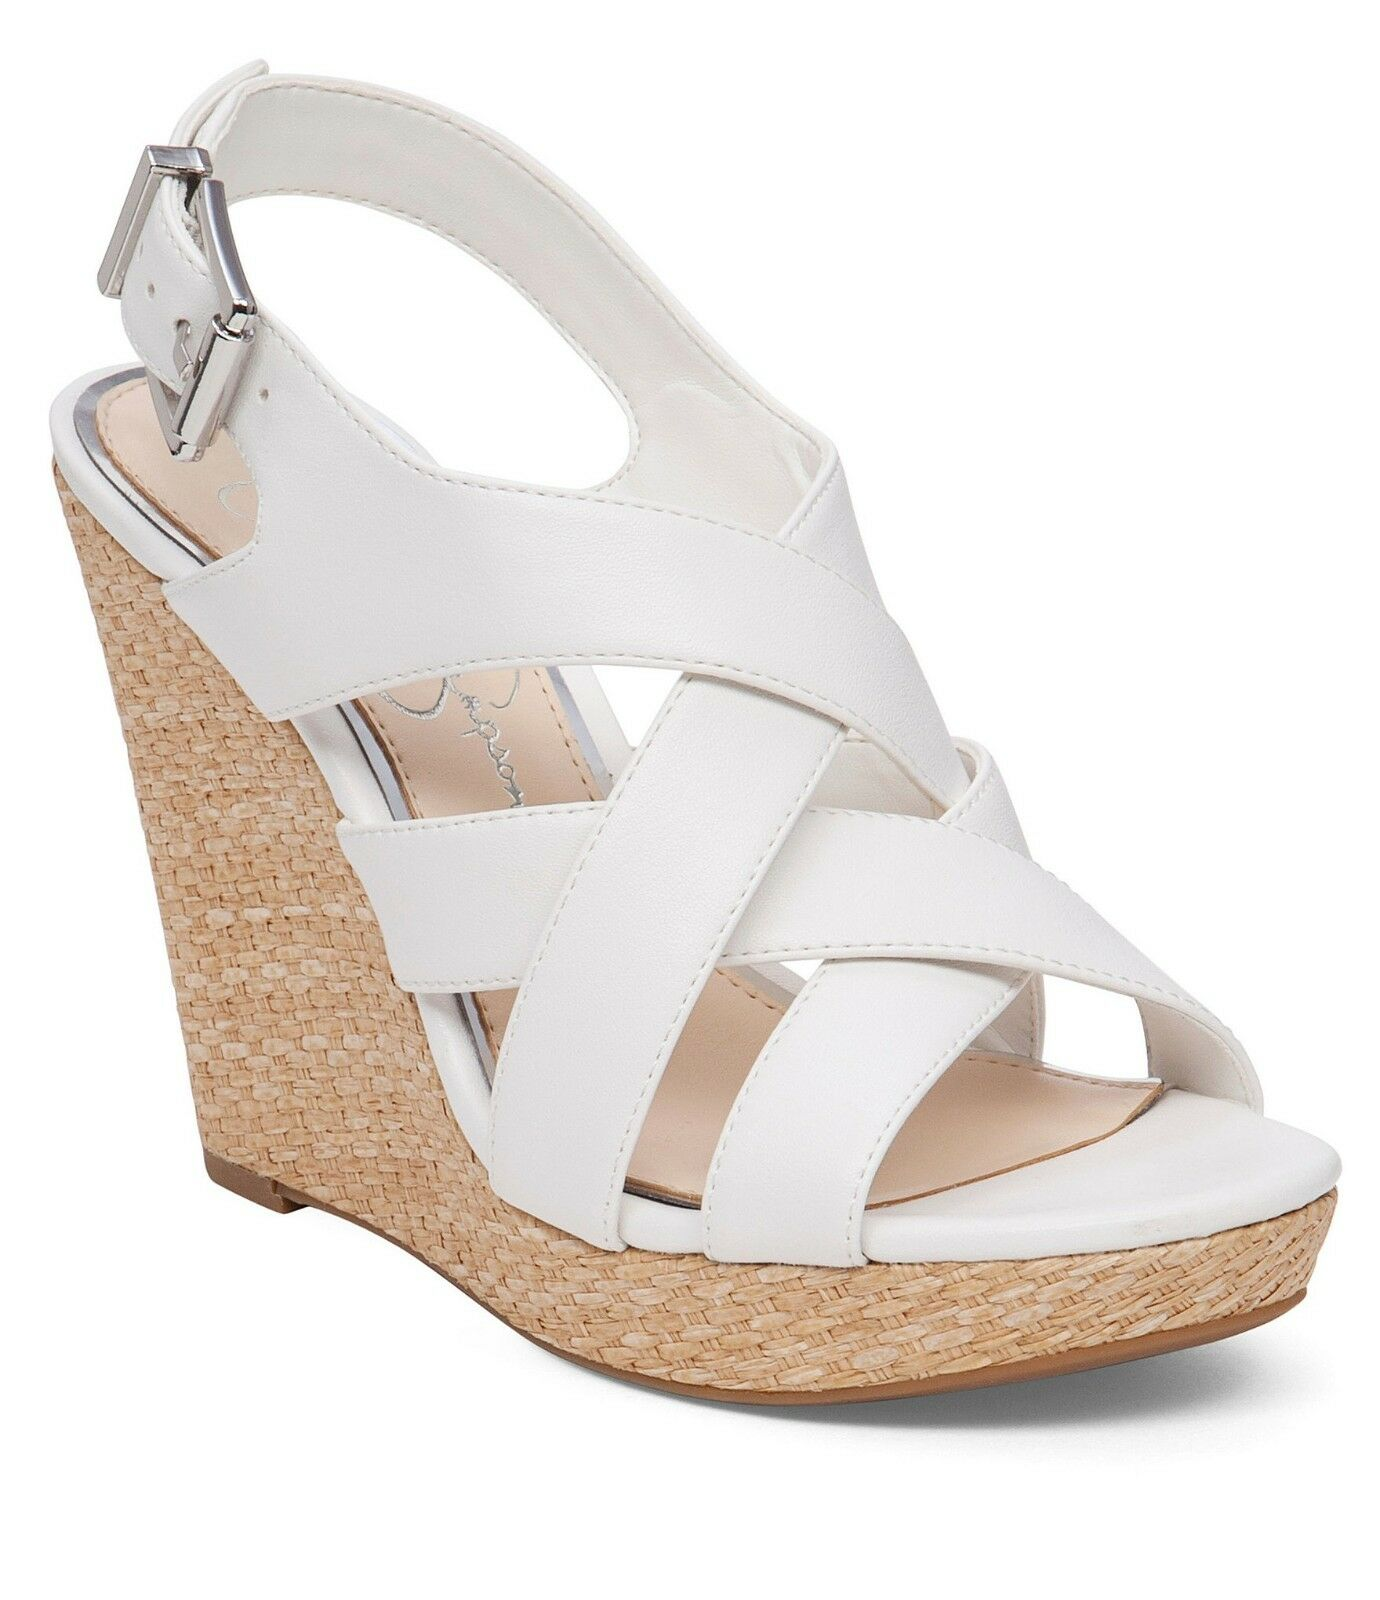 Jessica Simpson Jamallo Wedges, Sizes 6.5-10 Powder Sleek JS-Jamallo White